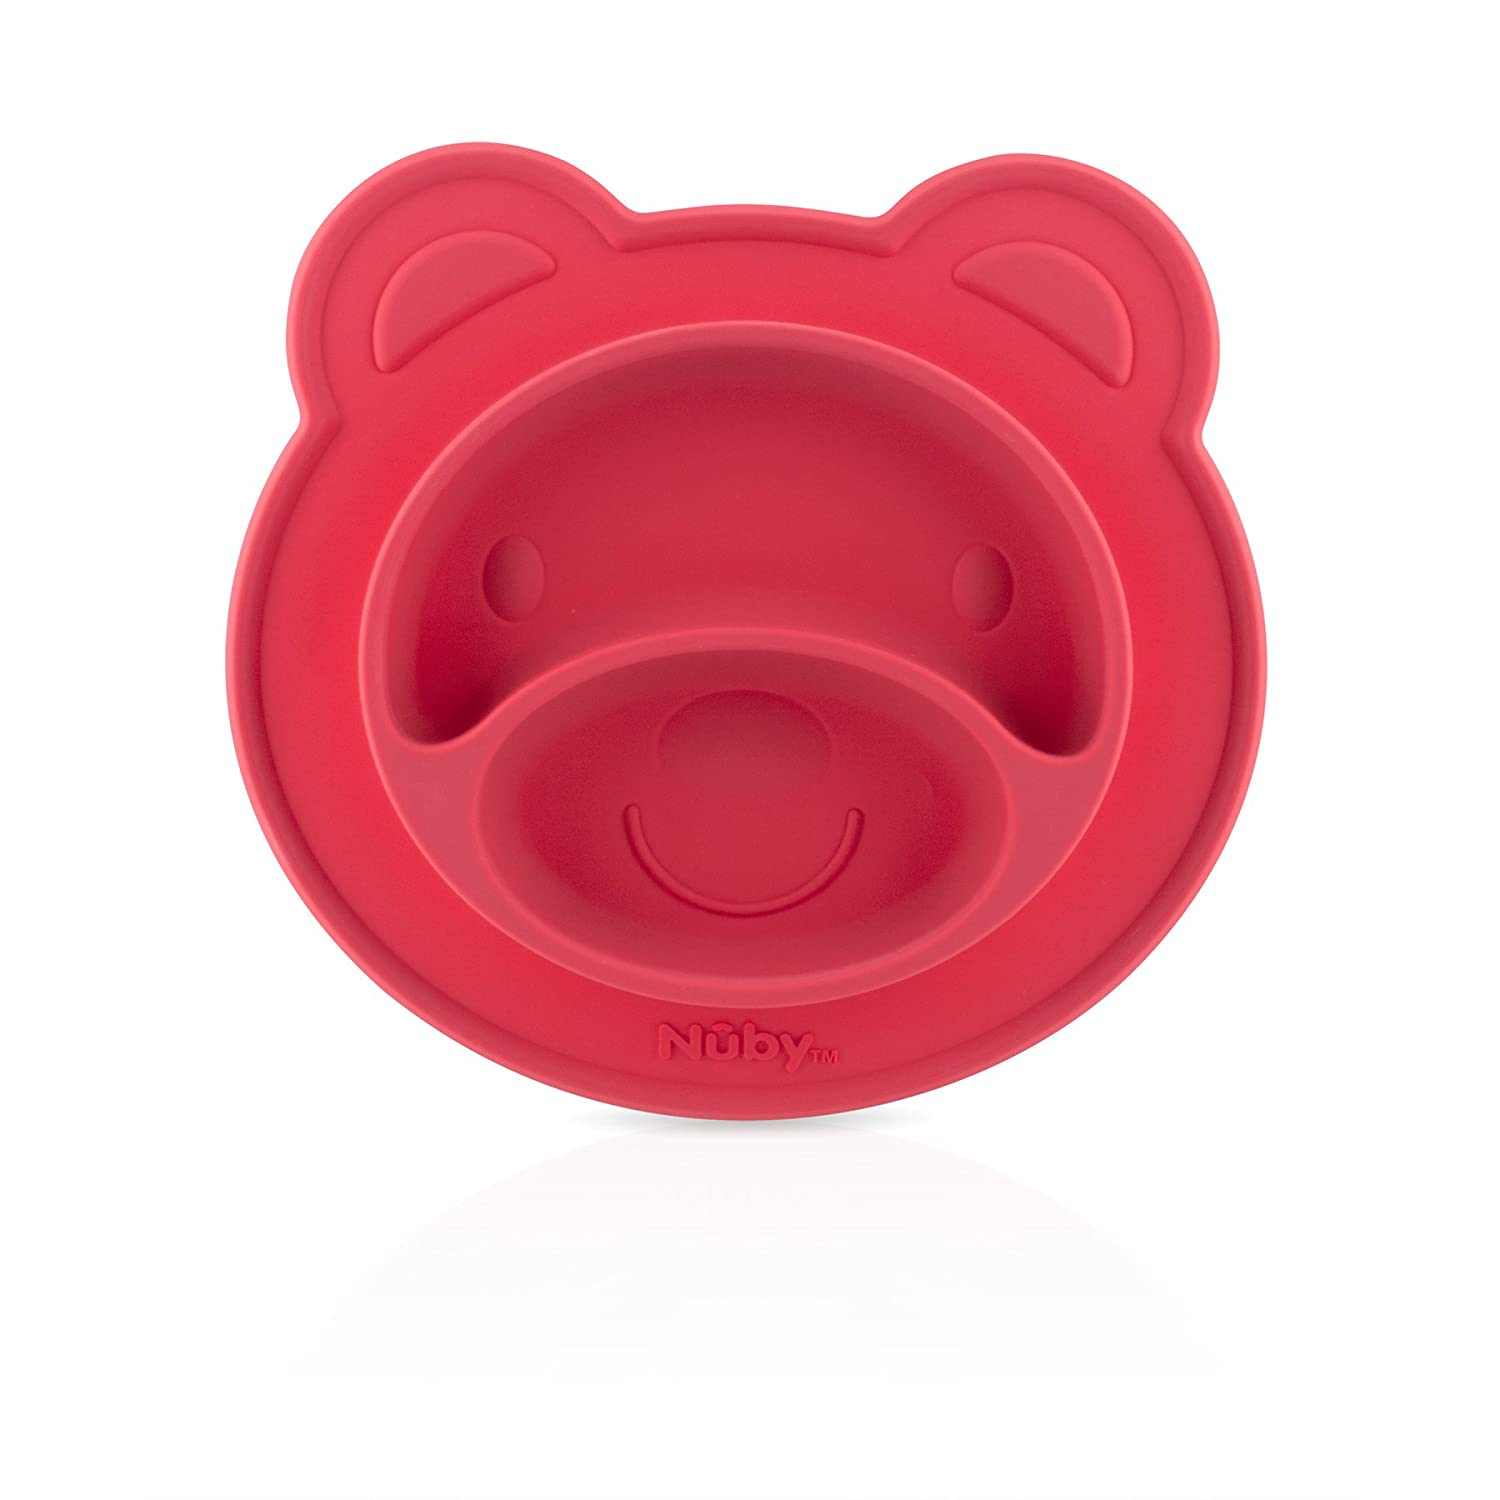 Nuby 537076PK Sure Grip Silicone Miracle Mat Section Bear Plate, Red